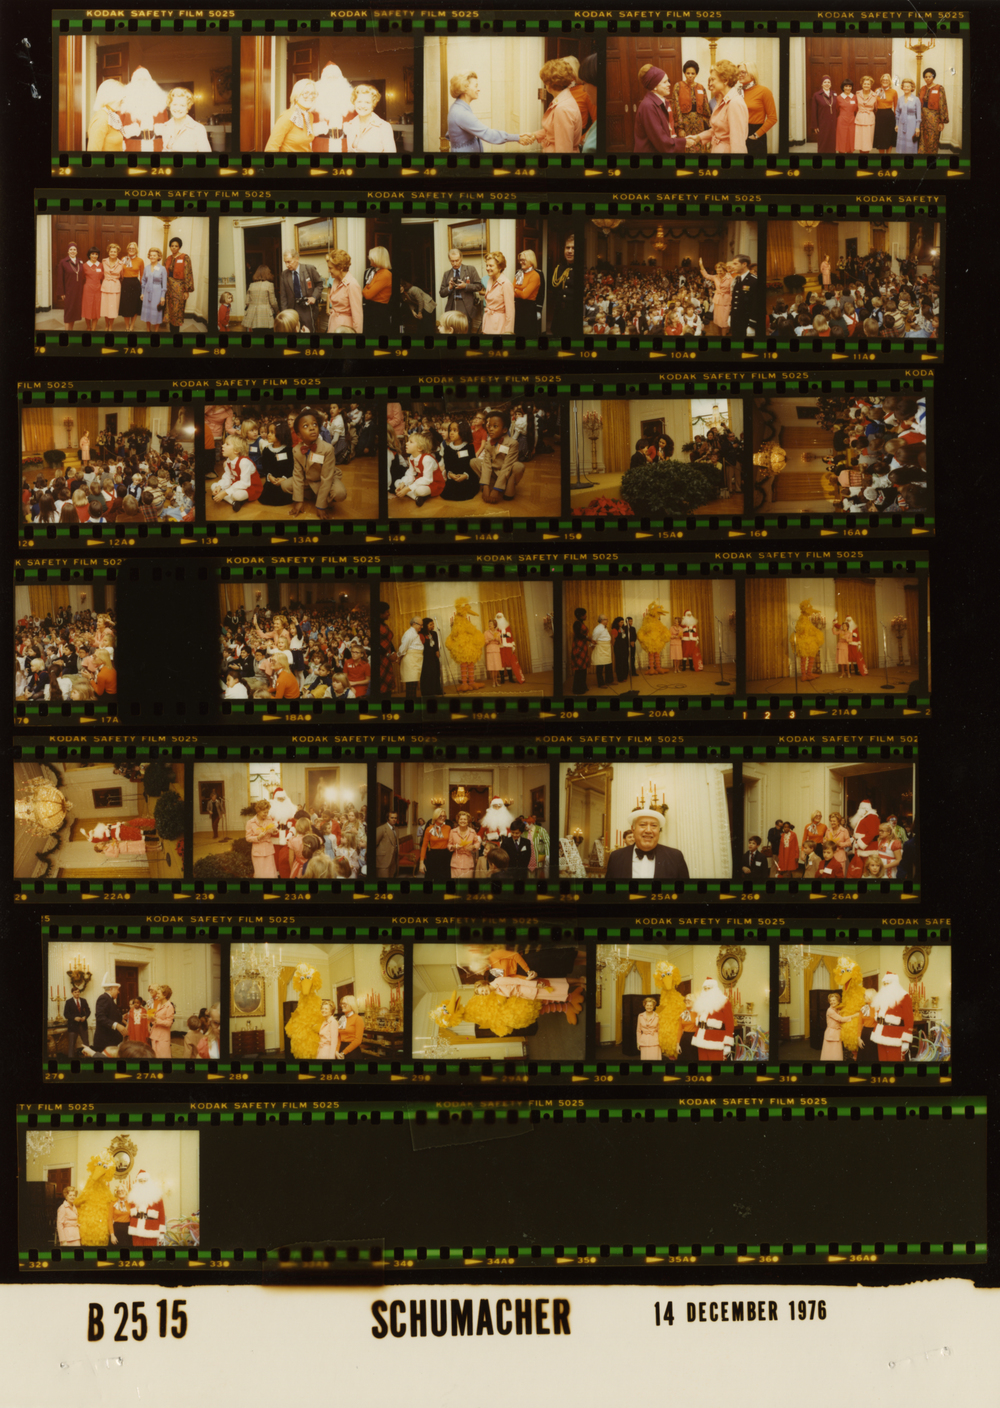 Contact sheet of Big Bird's visit to the White House